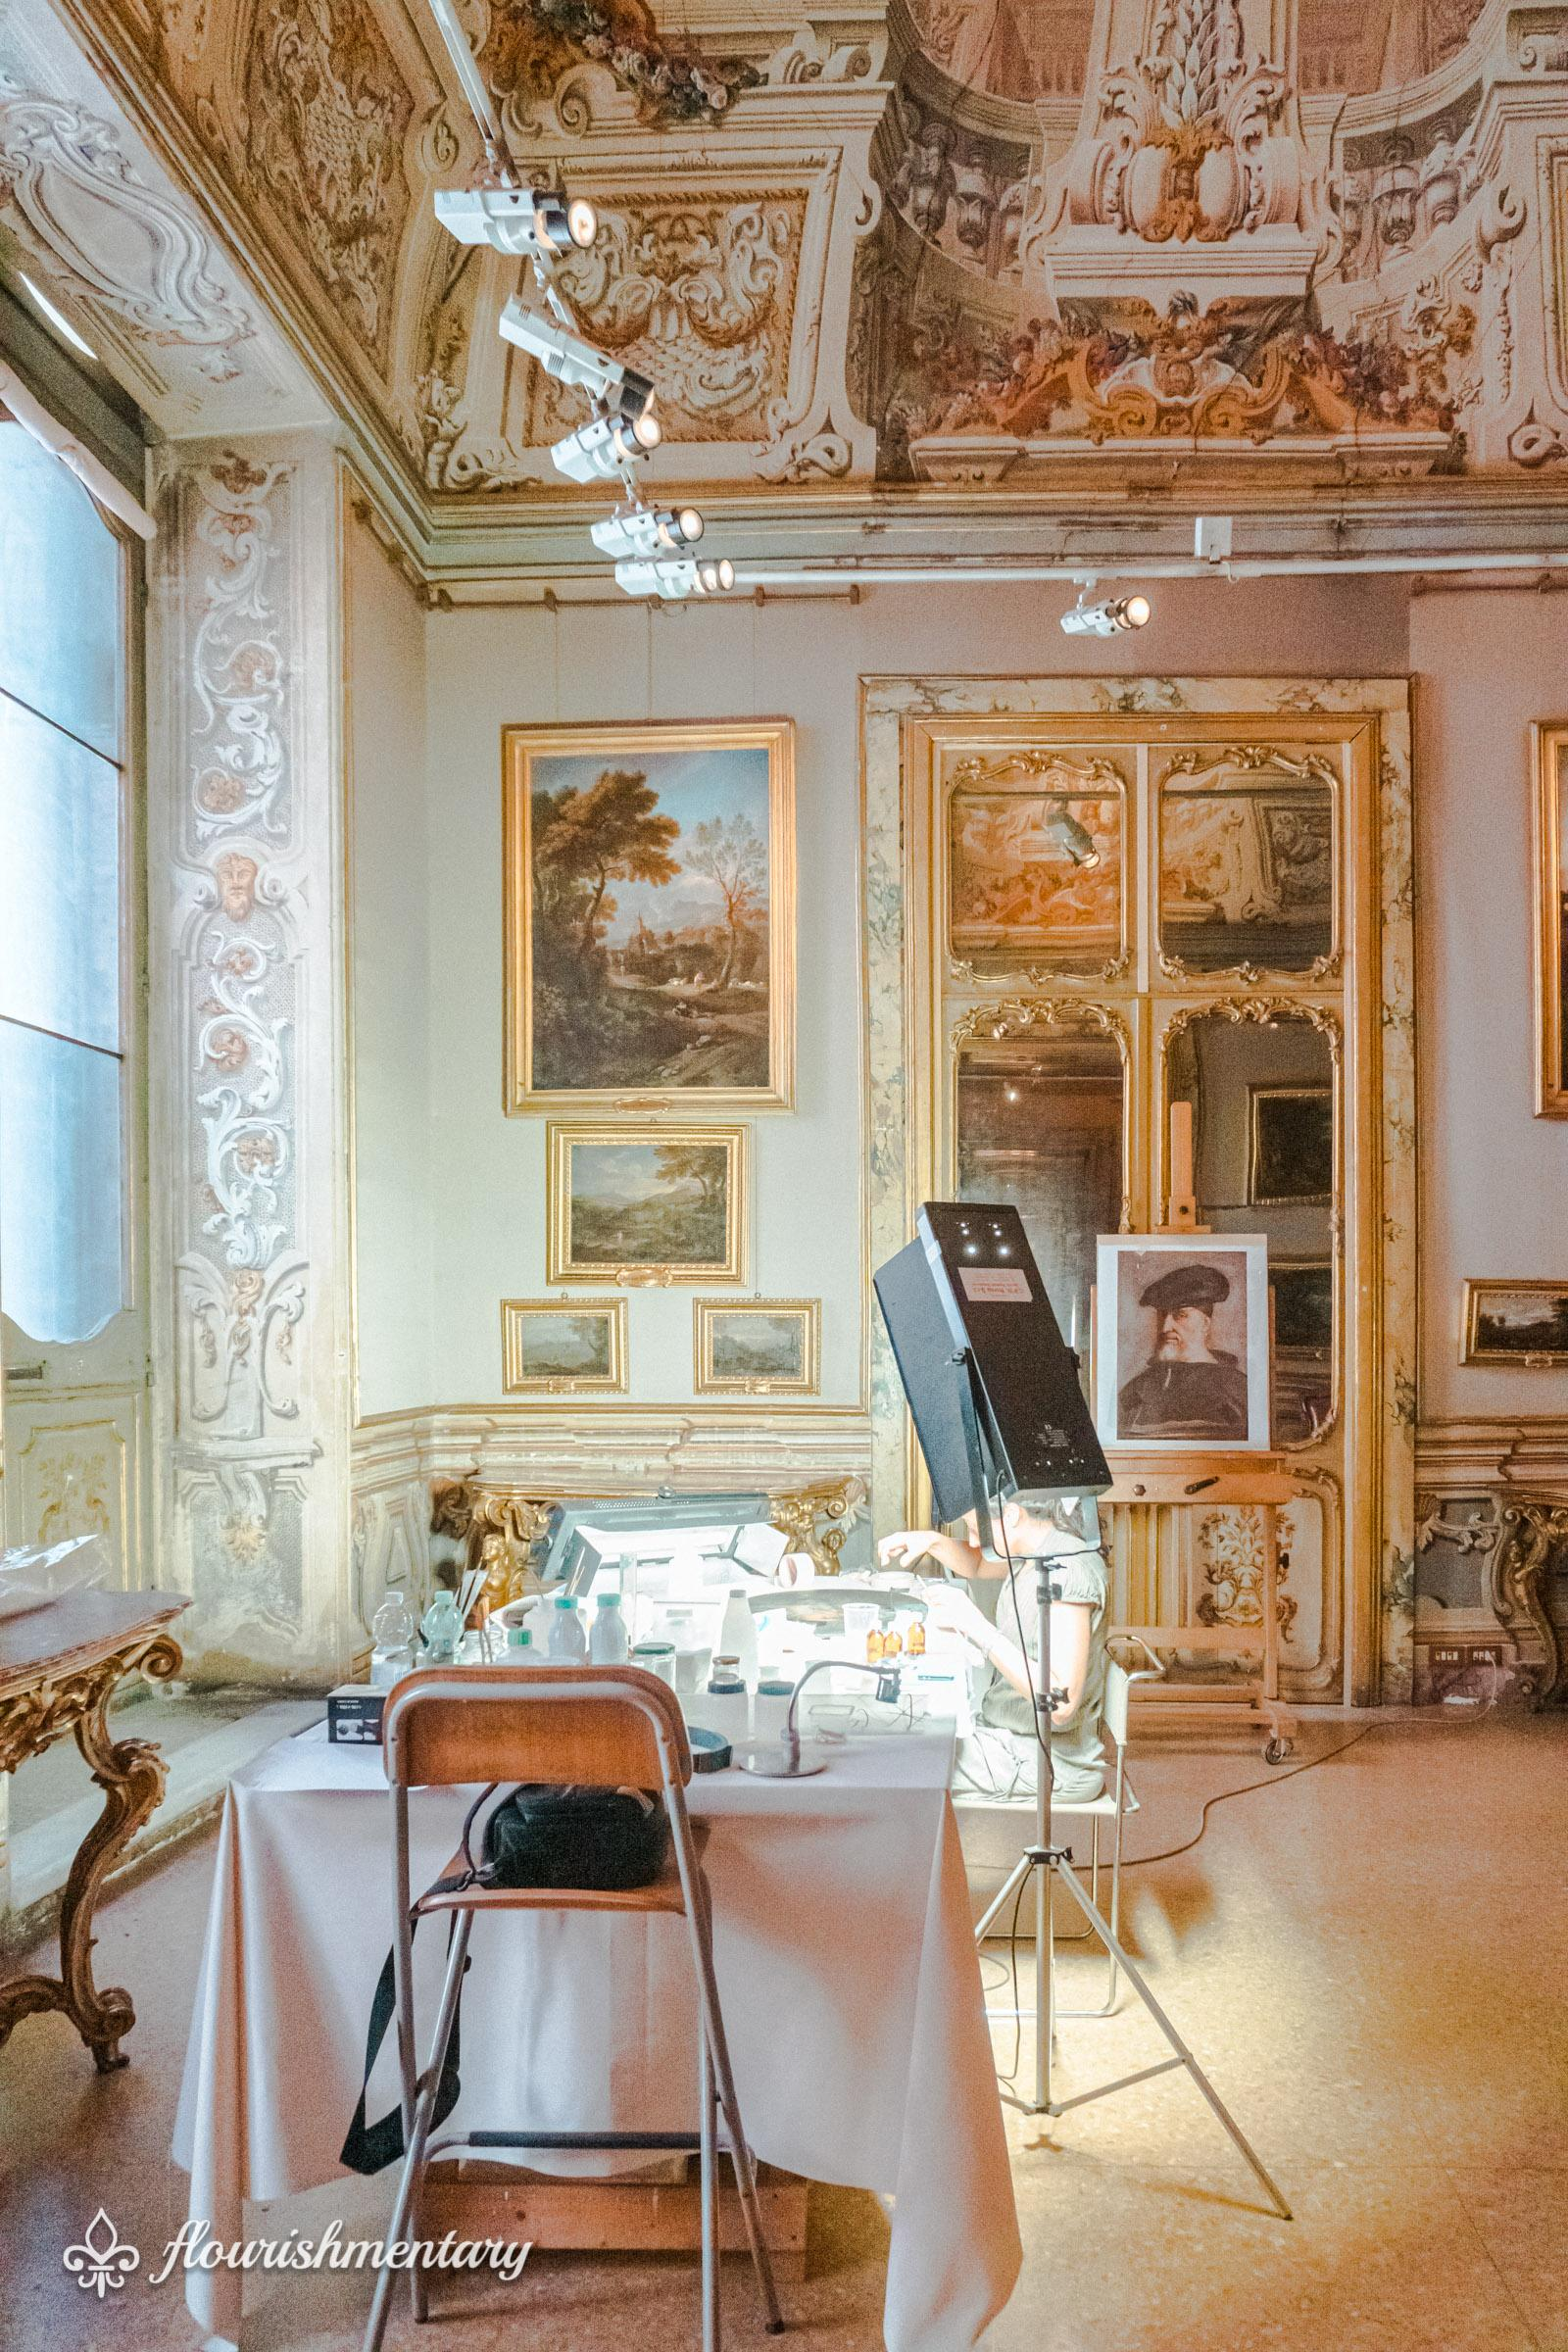 painting restoration Galleria Doria Pamphilj